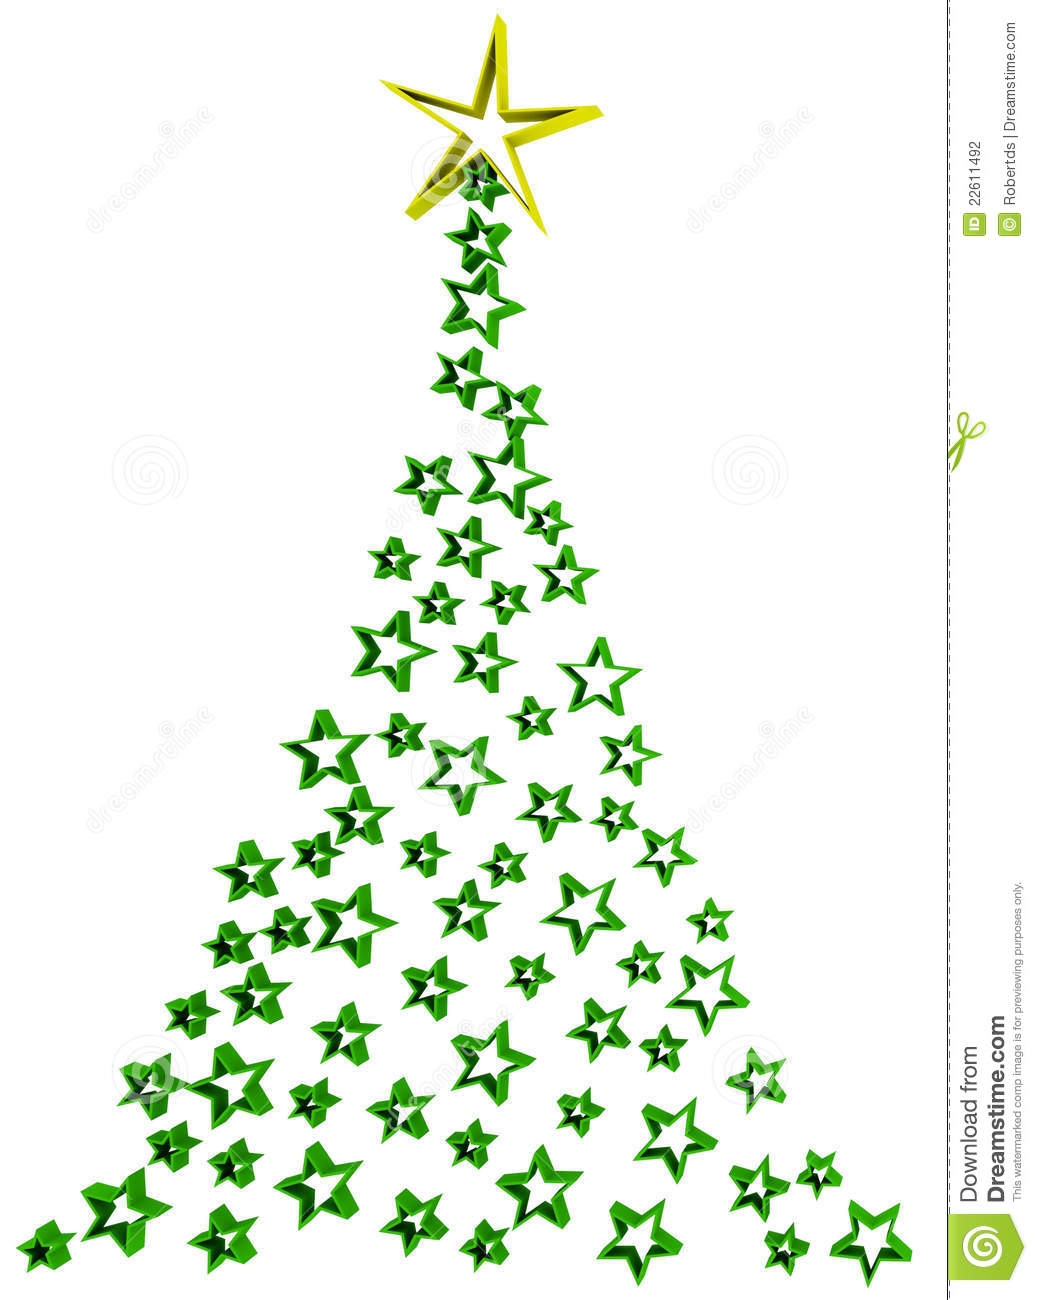 Abstract christmas tree clipart 4 » Clipart Station.